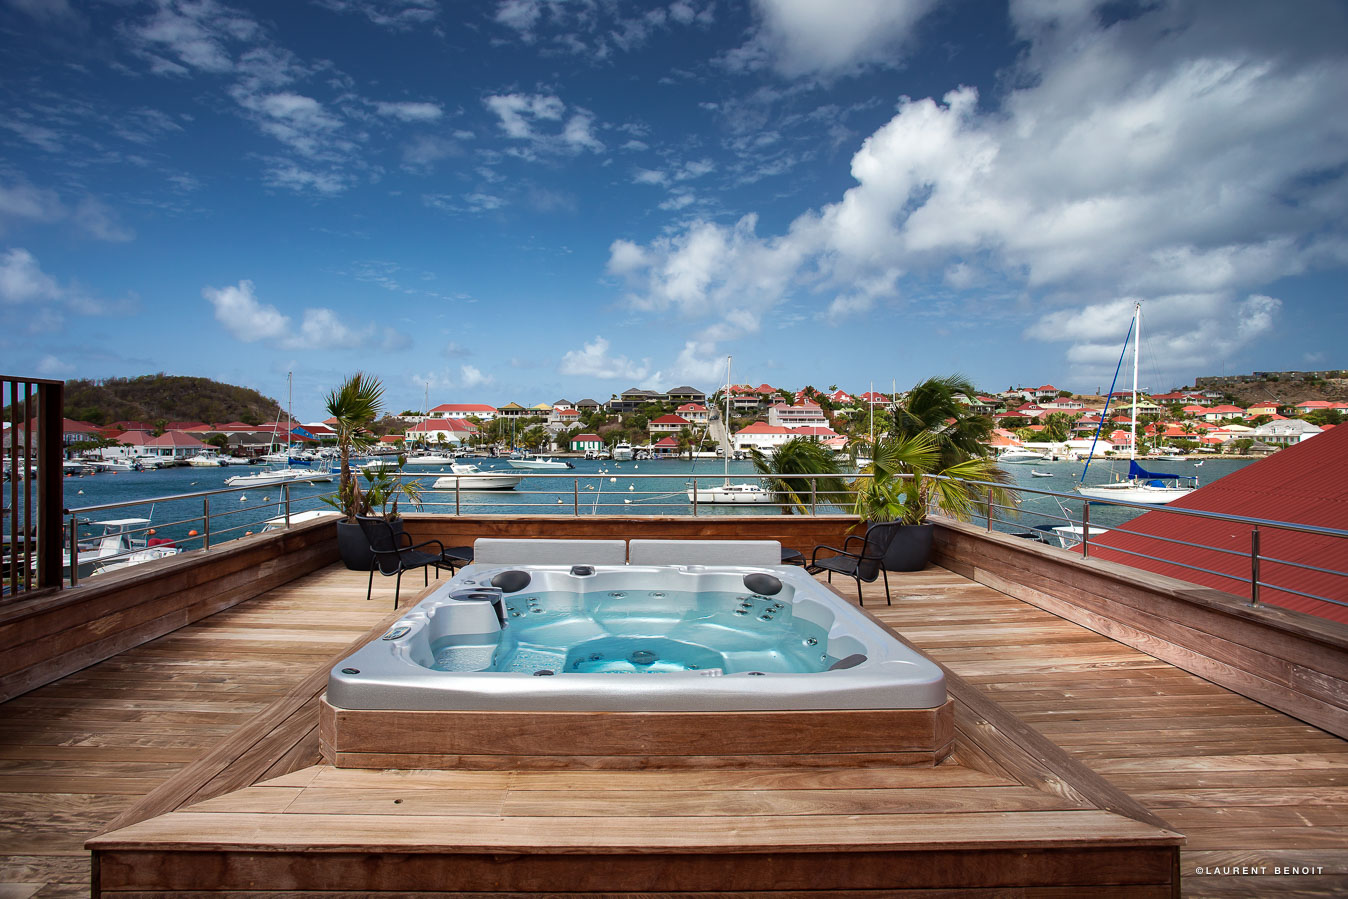 Apartment Rive Gauche - Perfect Honeymooners Apartment for Rent St Barth in the Heart of Gustavia - Jacuzzi